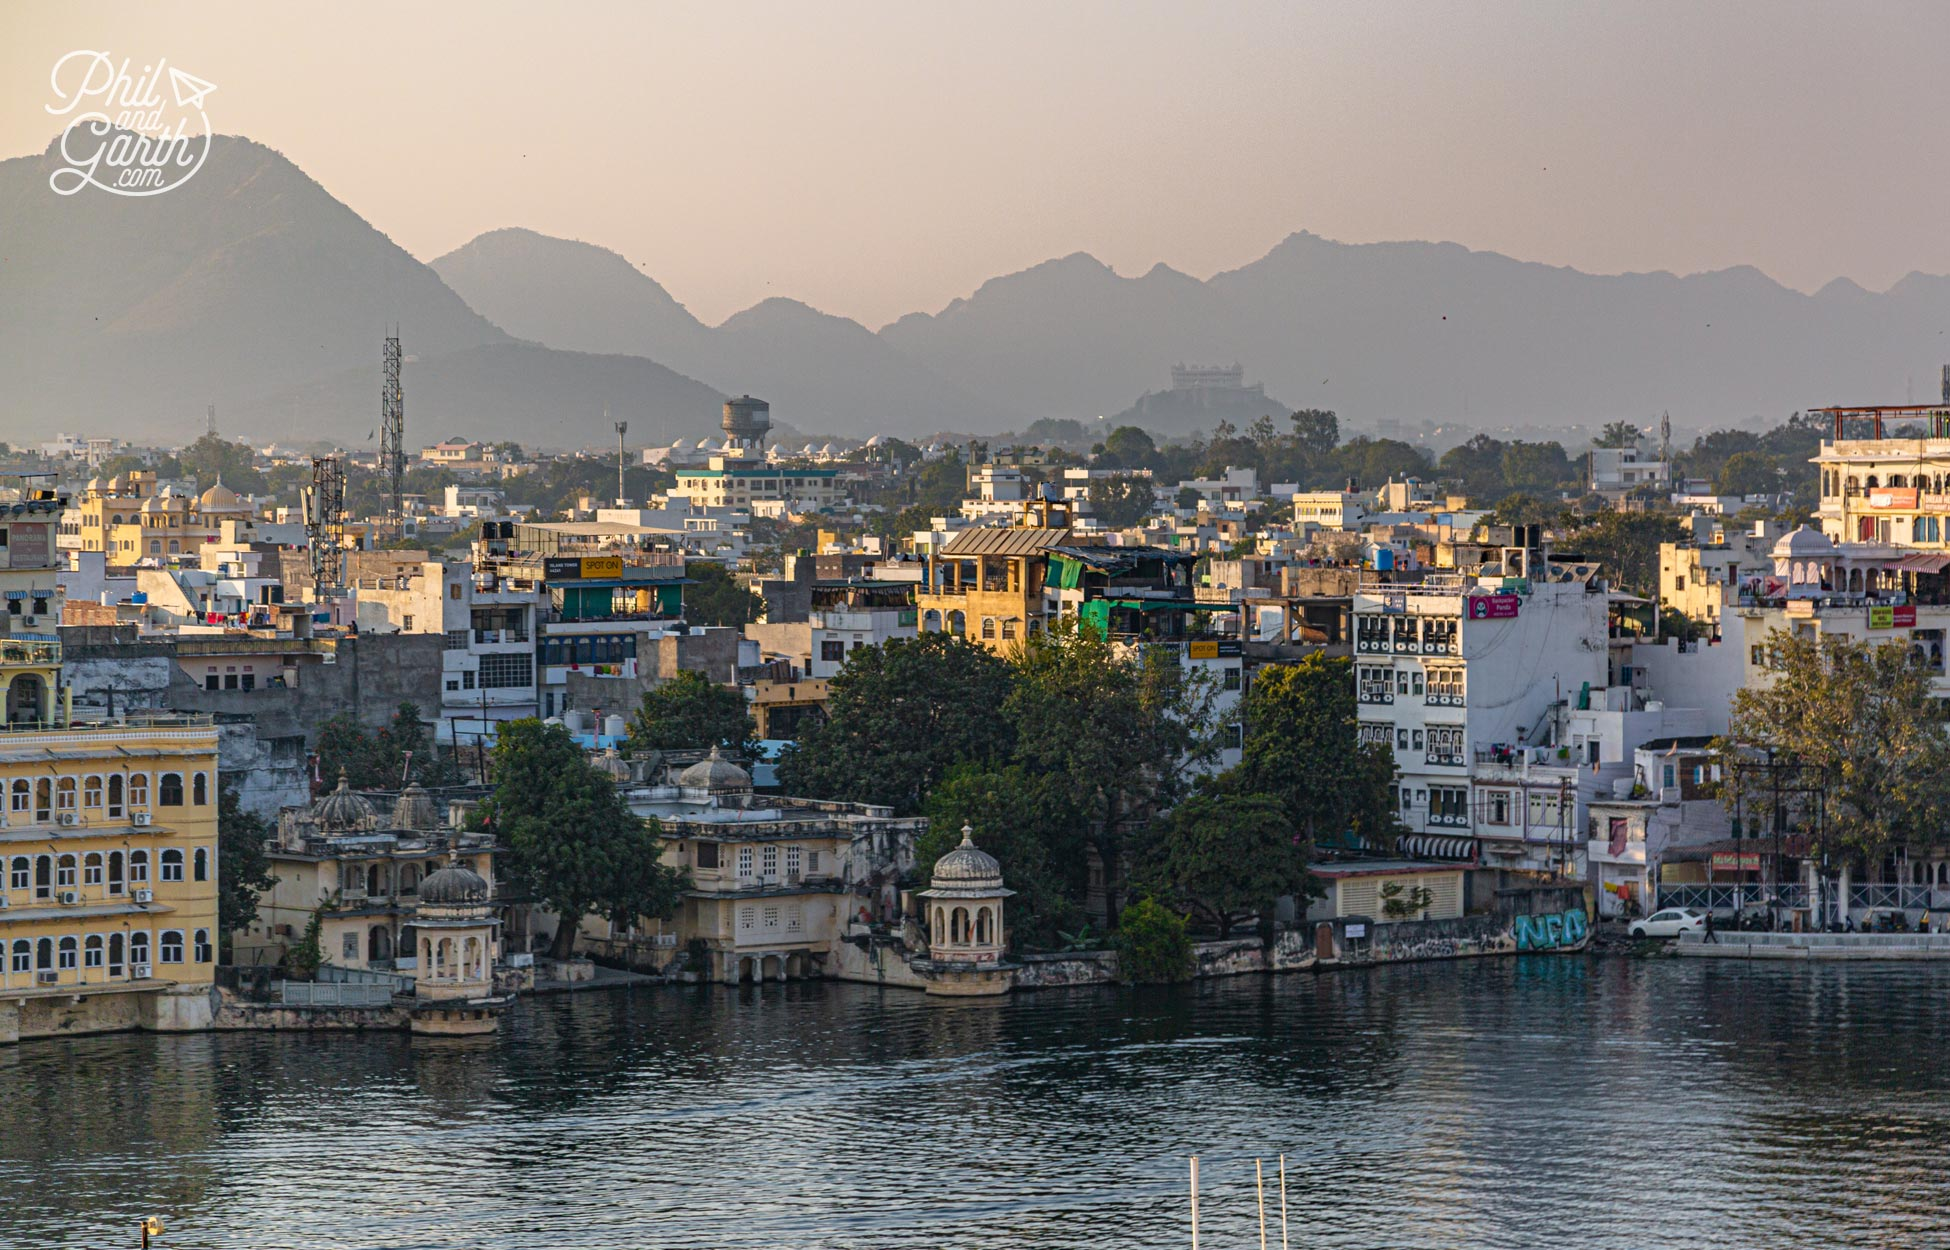 Built on the shore of Lake Pichola, Udaipur is surrounded by the dramatic Aravalli mountains